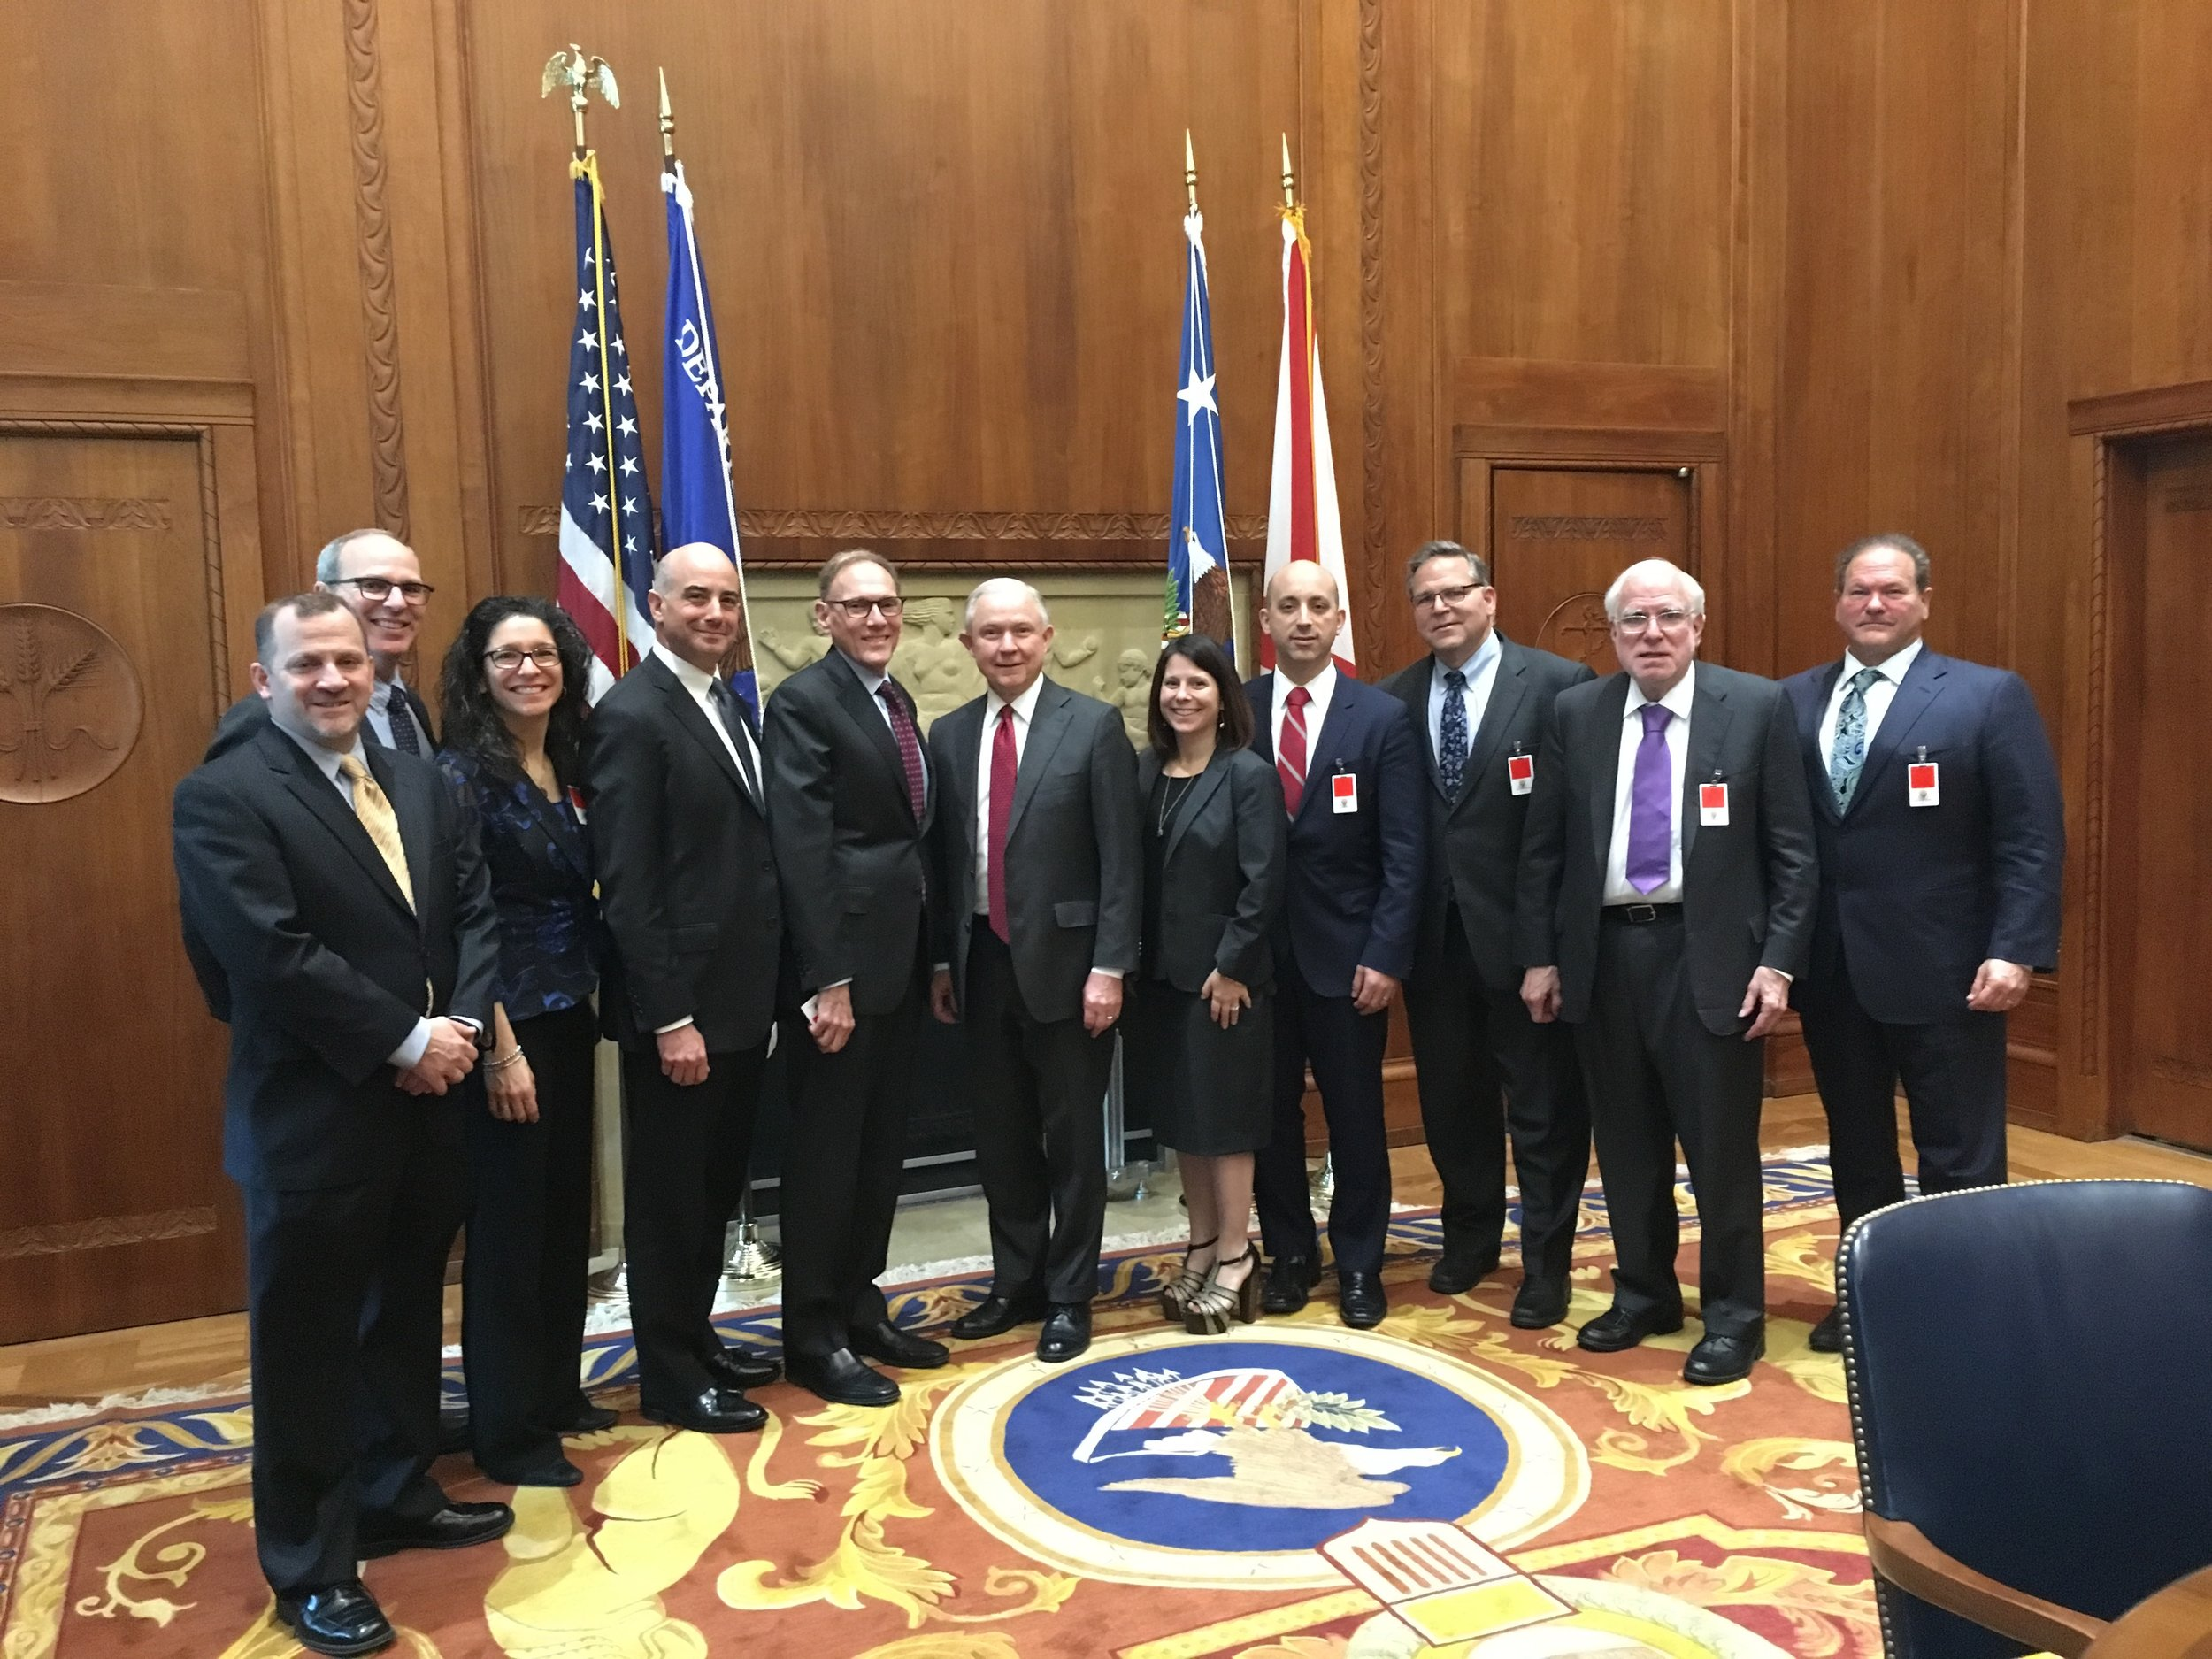 A delegation of Jewish leaders with U.S. Attorney General Jeff Sessions March 30, 2017, at the Department of Justice. Credit: JCC Association of North America.